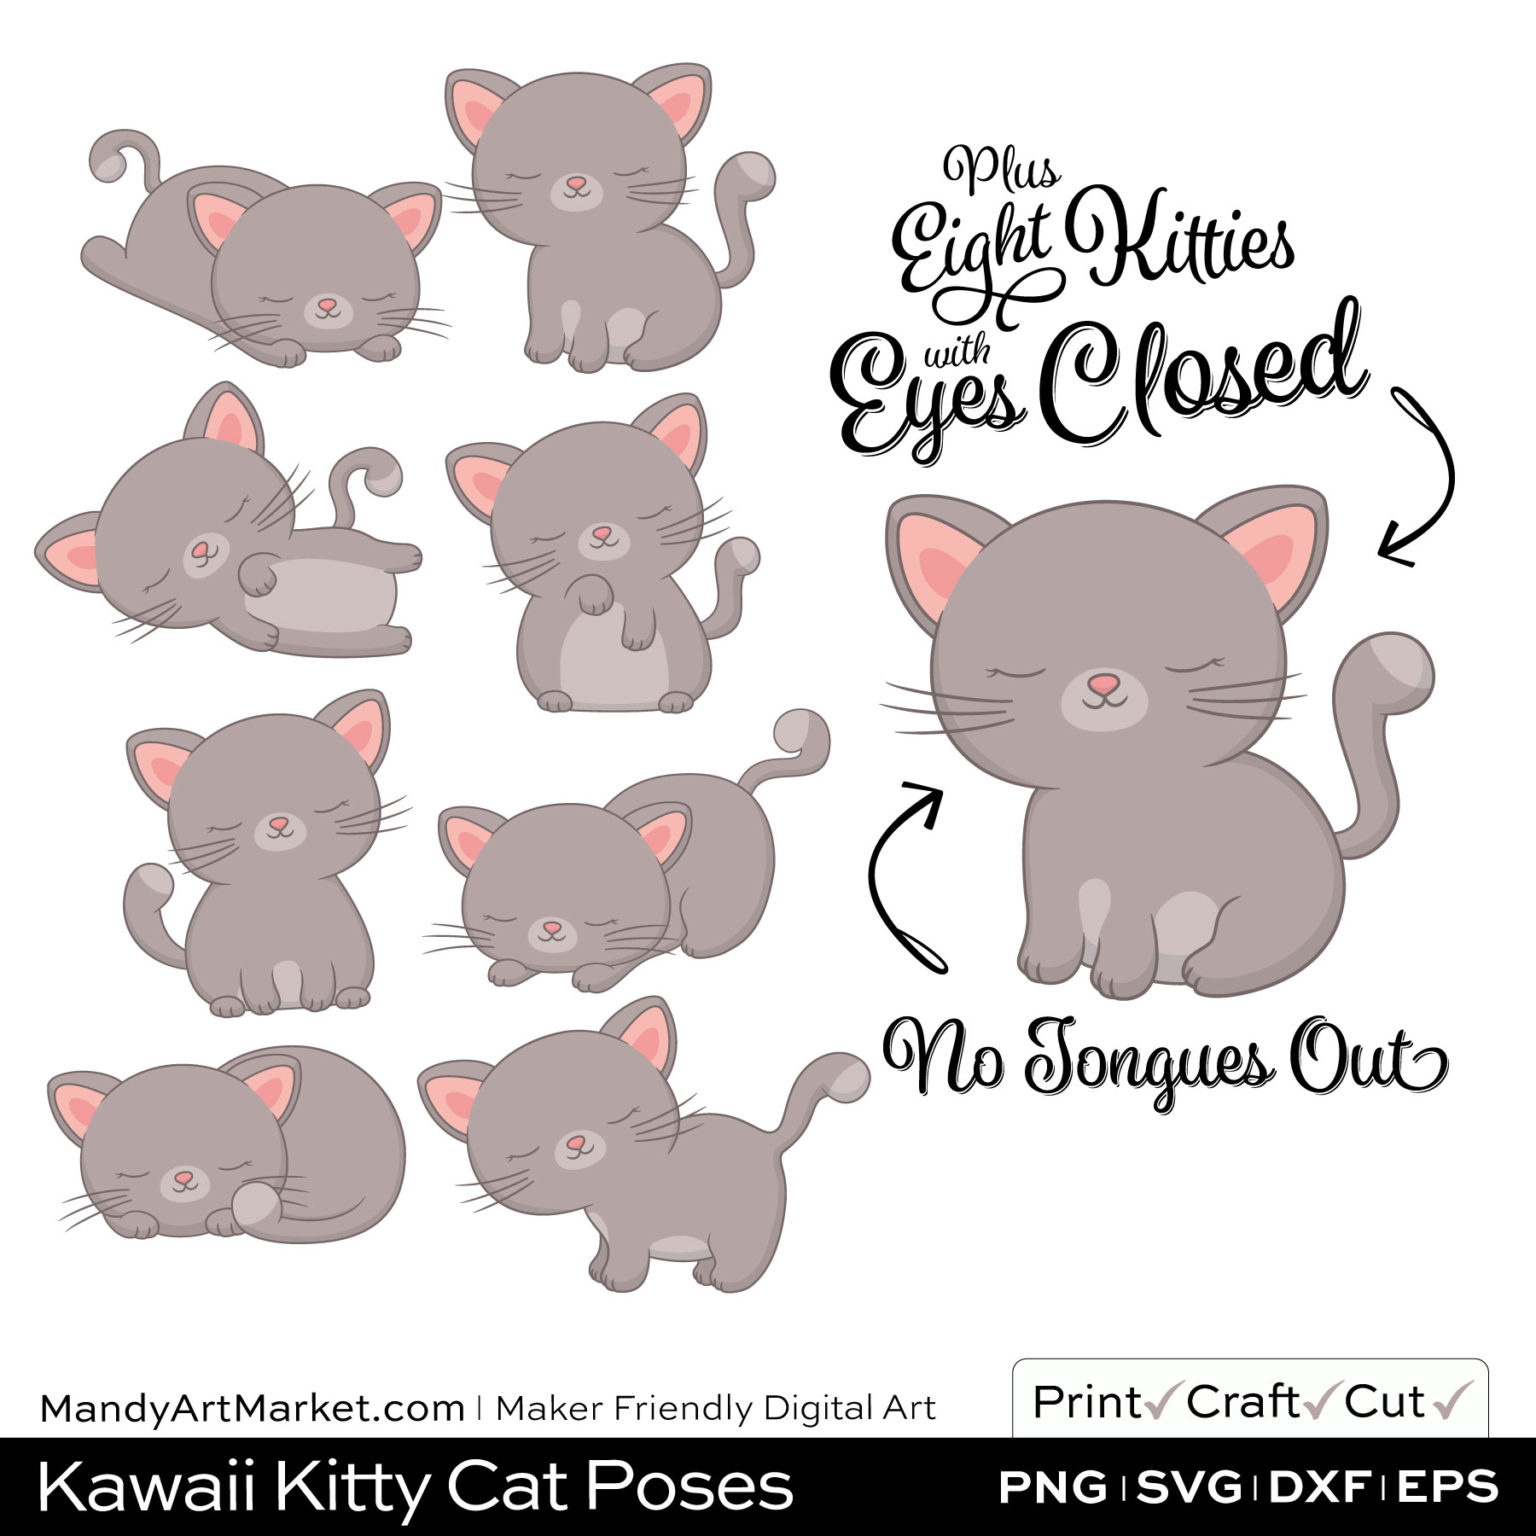 Warm Taupe Kawaii Kitty Cat Poses Clipart PNGs Included in Download